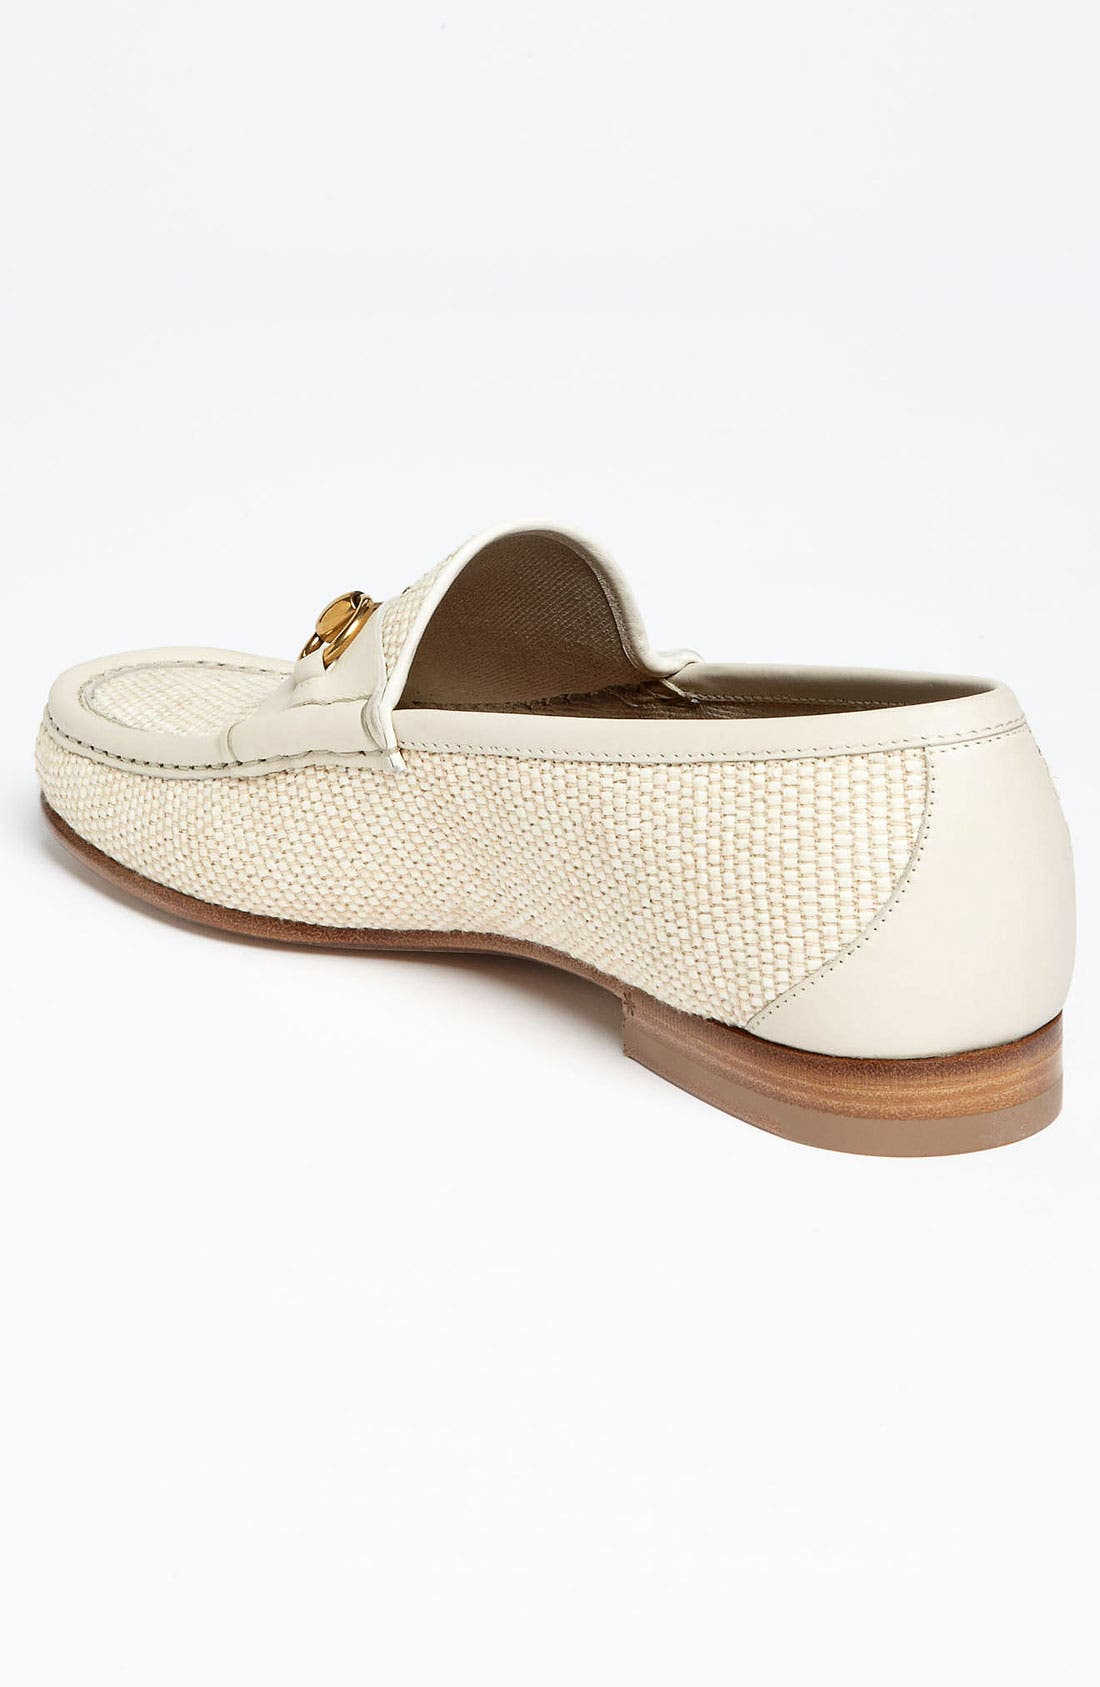 Alternate Image 2  - Gucci 'Roos' Straw Bit Loafer